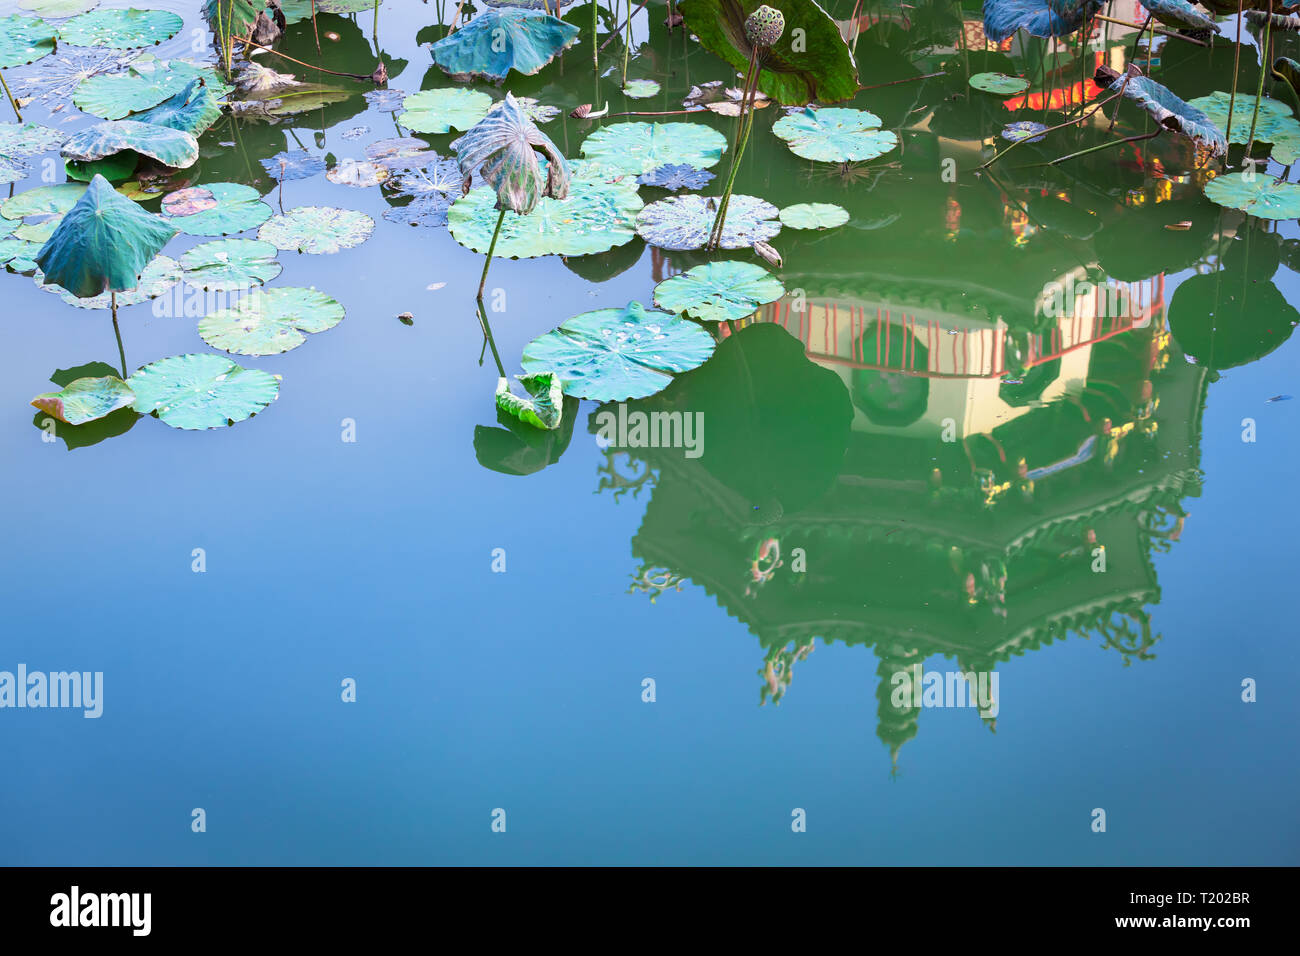 Tranquil scene of water lily lotus leaves at pond, reflection of traditional asian architecture detail and blue sky (copy space) - Stock Image